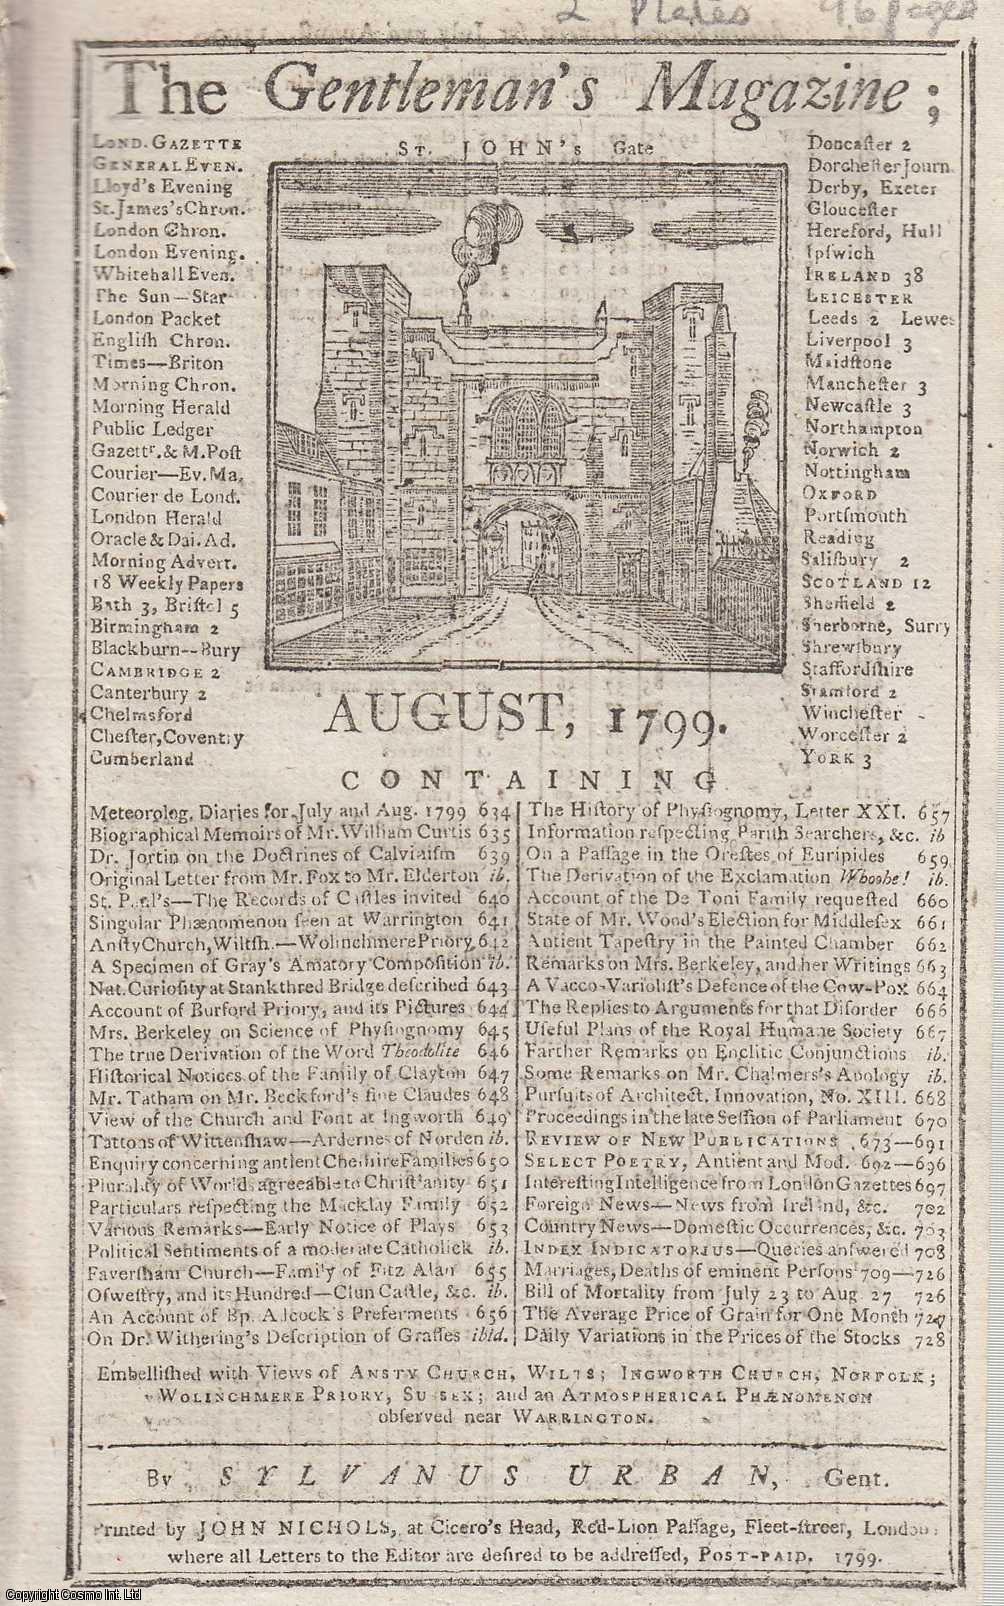 The Gentleman's Magazine for August 1799.  FEATURING Two Plates; Views of Ansty Church, Wilts. and Shulbred Priory & Farley Castle Gateway and Mansion House,Bletse., Urban, Sylvanus.